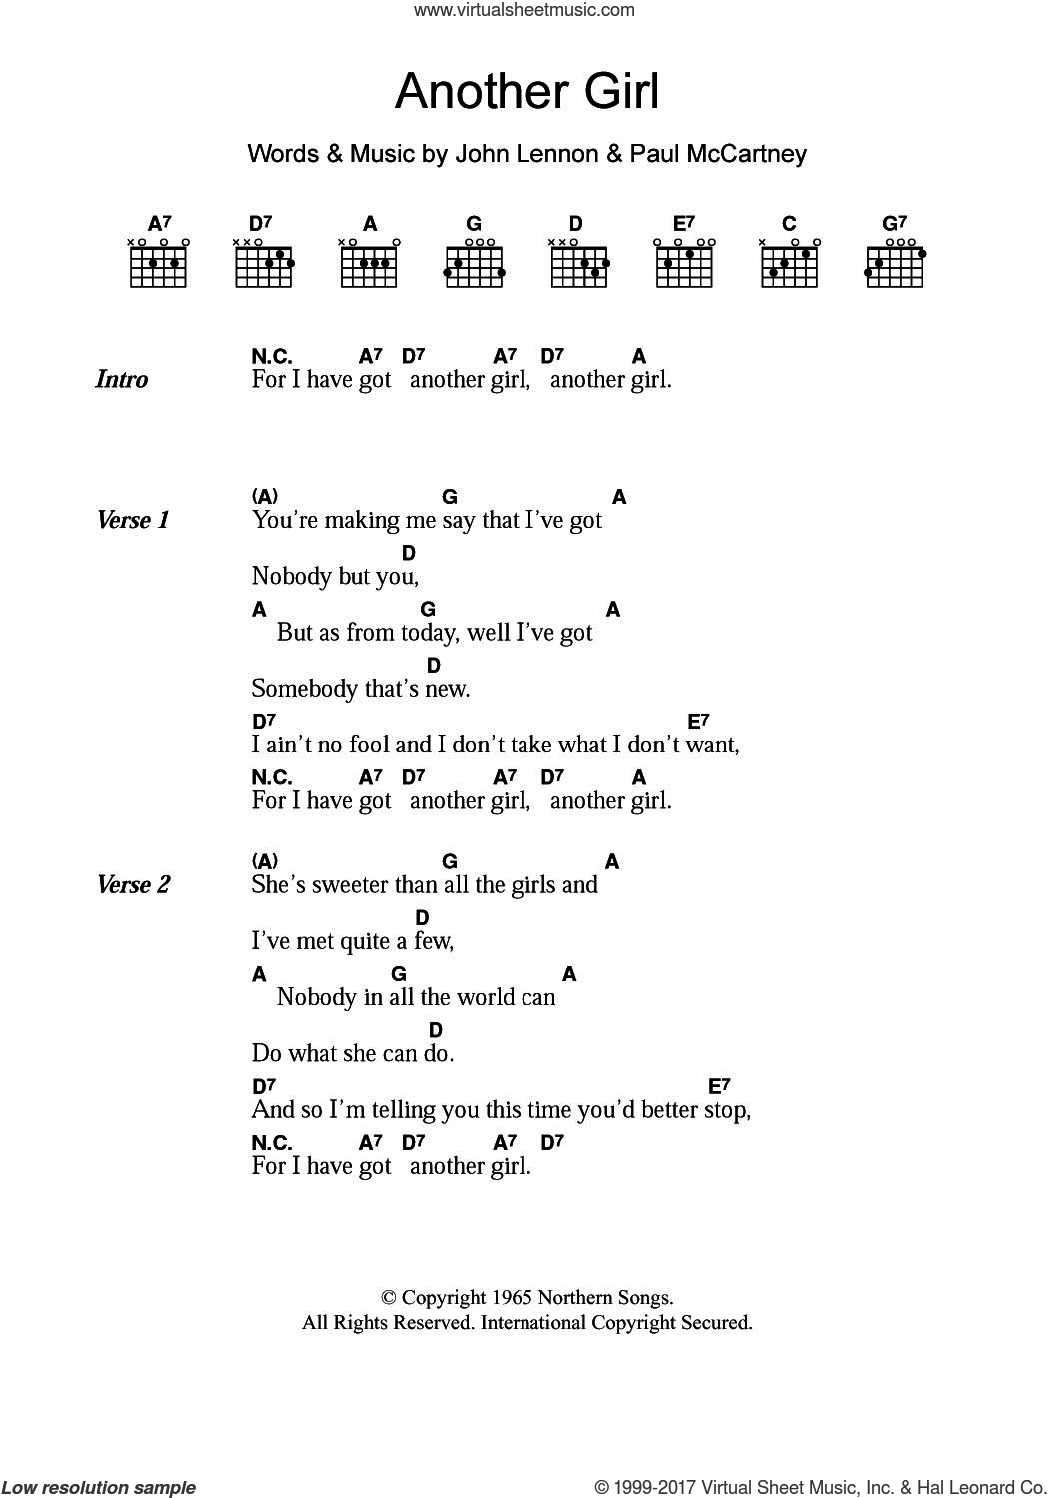 Another Girl sheet music for guitar (chords) by The Beatles, John Lennon and Paul McCartney, intermediate skill level